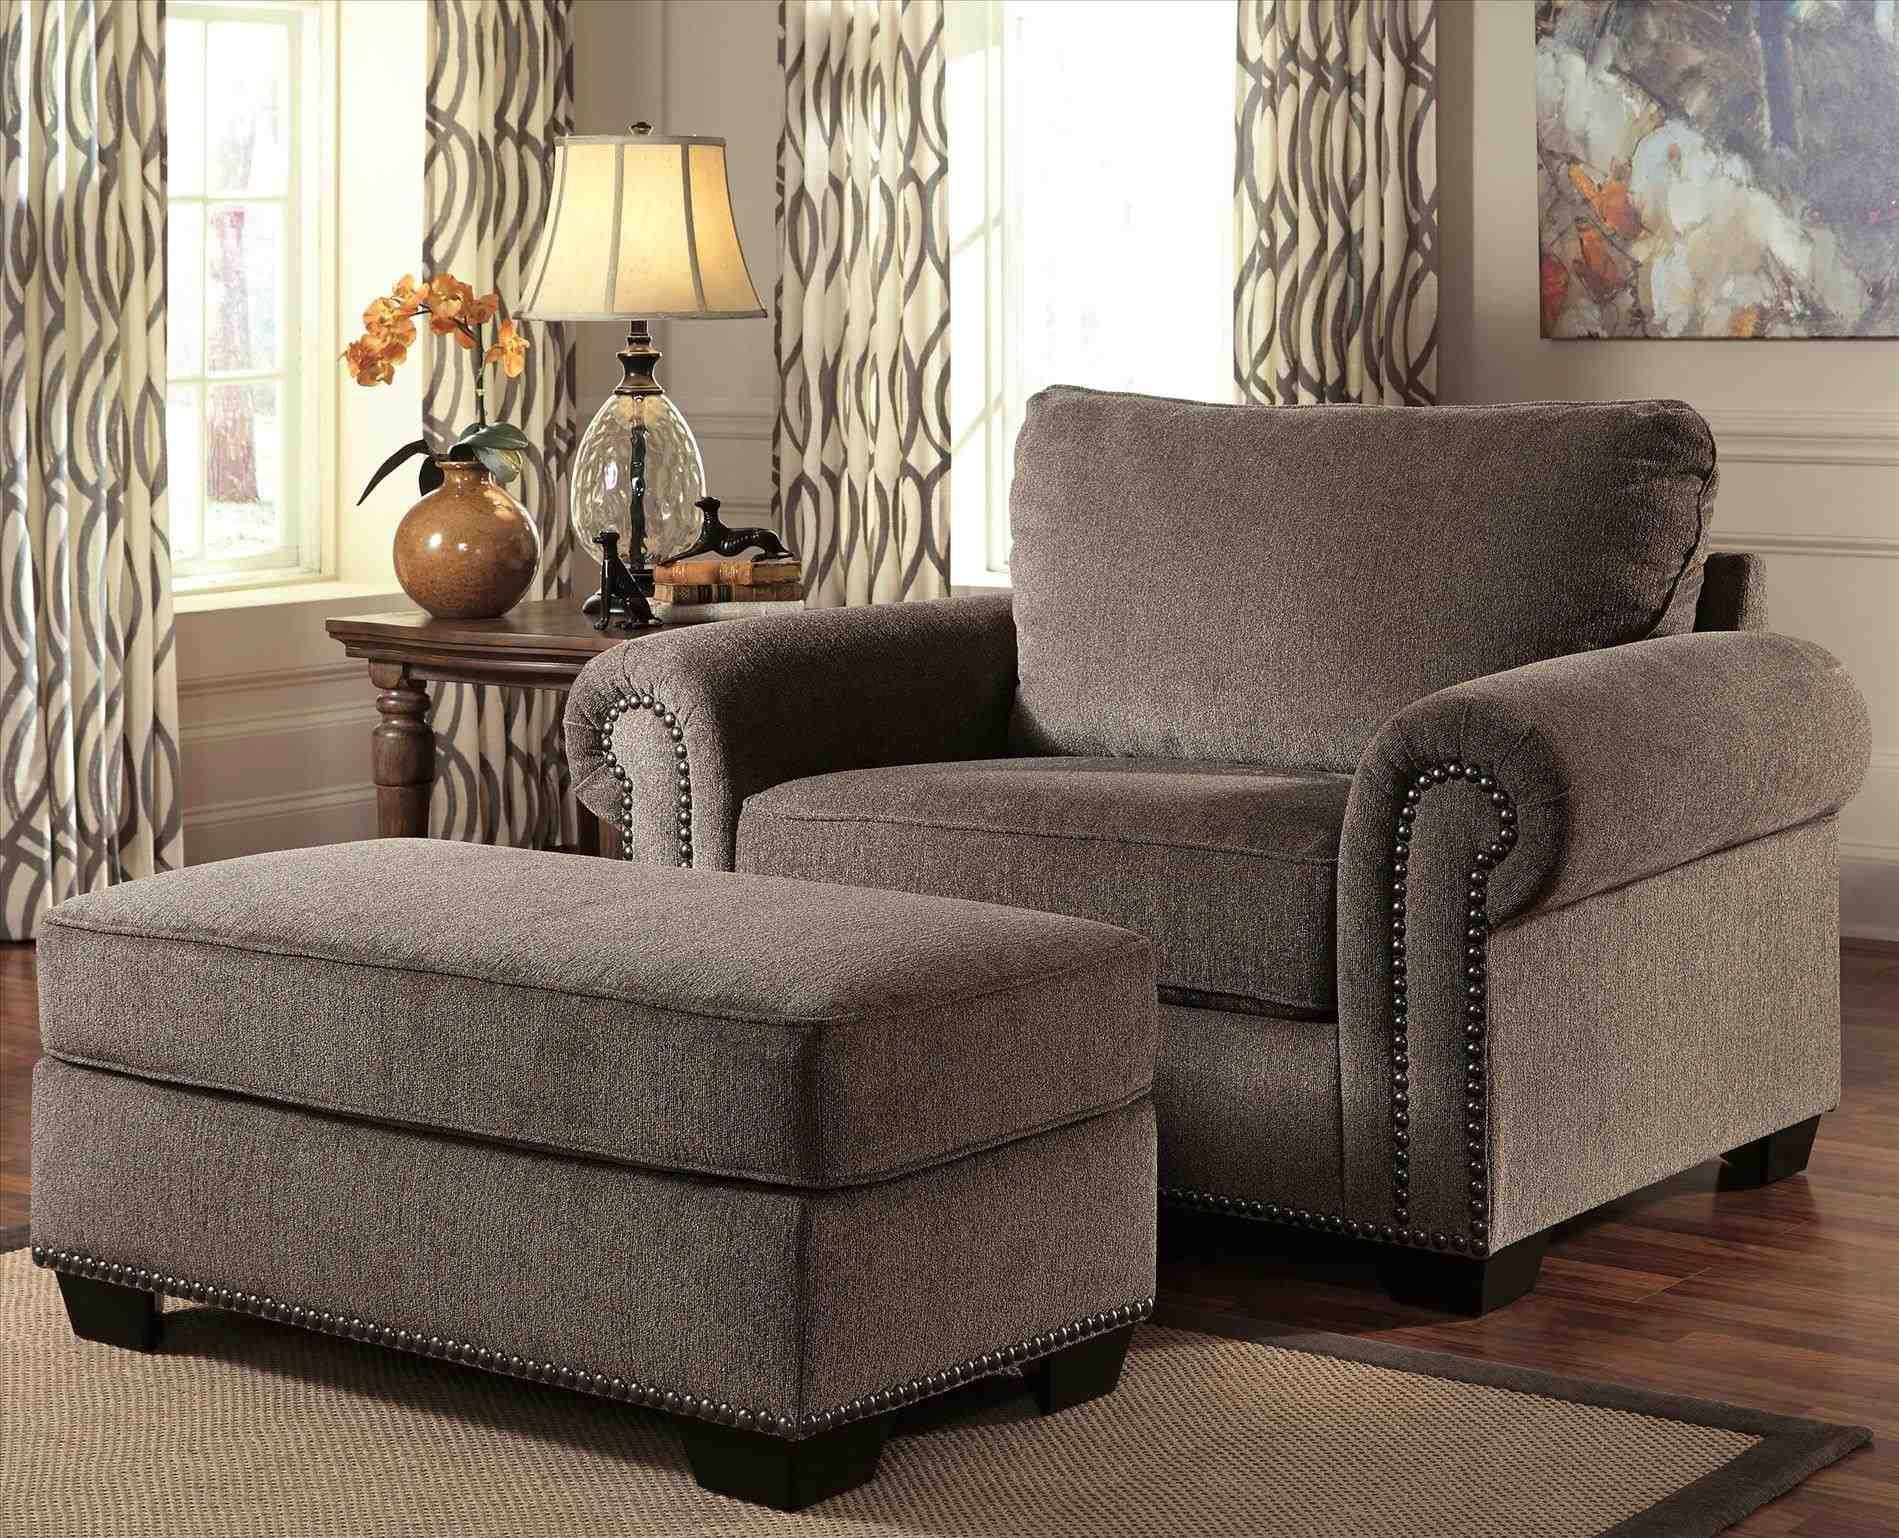 Chair And A Half With Ottoman Sale Full Size Of Armchair Accent Chairs Accent Chairs Target Wingback Chair For Living Room Chairs Furniture Chair And A Half